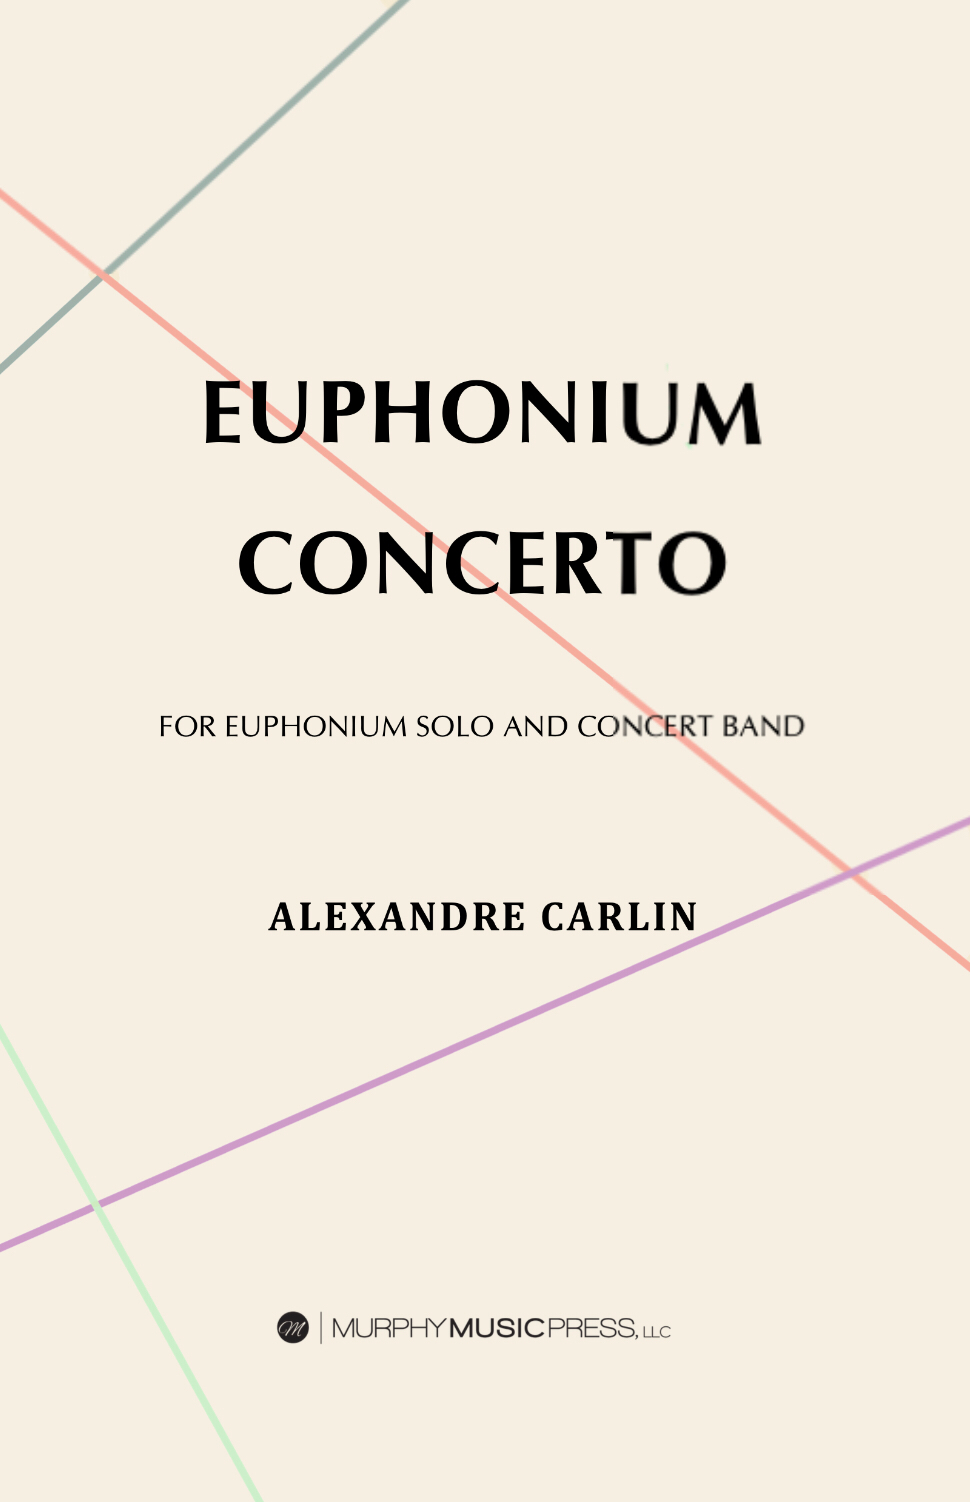 Concerto For Euphonium by Alexandre Carlin